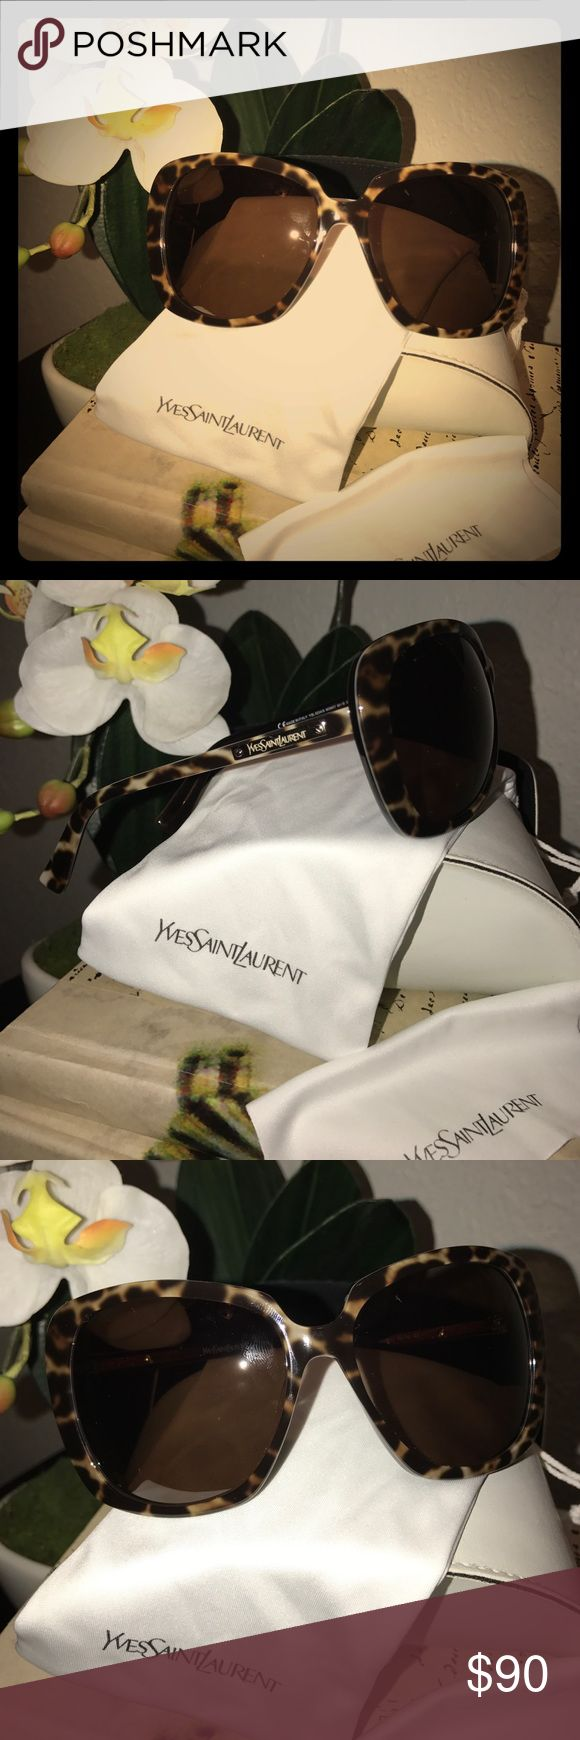 Authentic Yves Saint Laurent Tortoise Sunglasses Like new YSL Brown Tortoise sunglasses. Good for smaller faces, a bit narrow. Comes with pouch, cleaning cloth and white case. Case has marks. Yves Saint Laurent Accessories Sunglasses